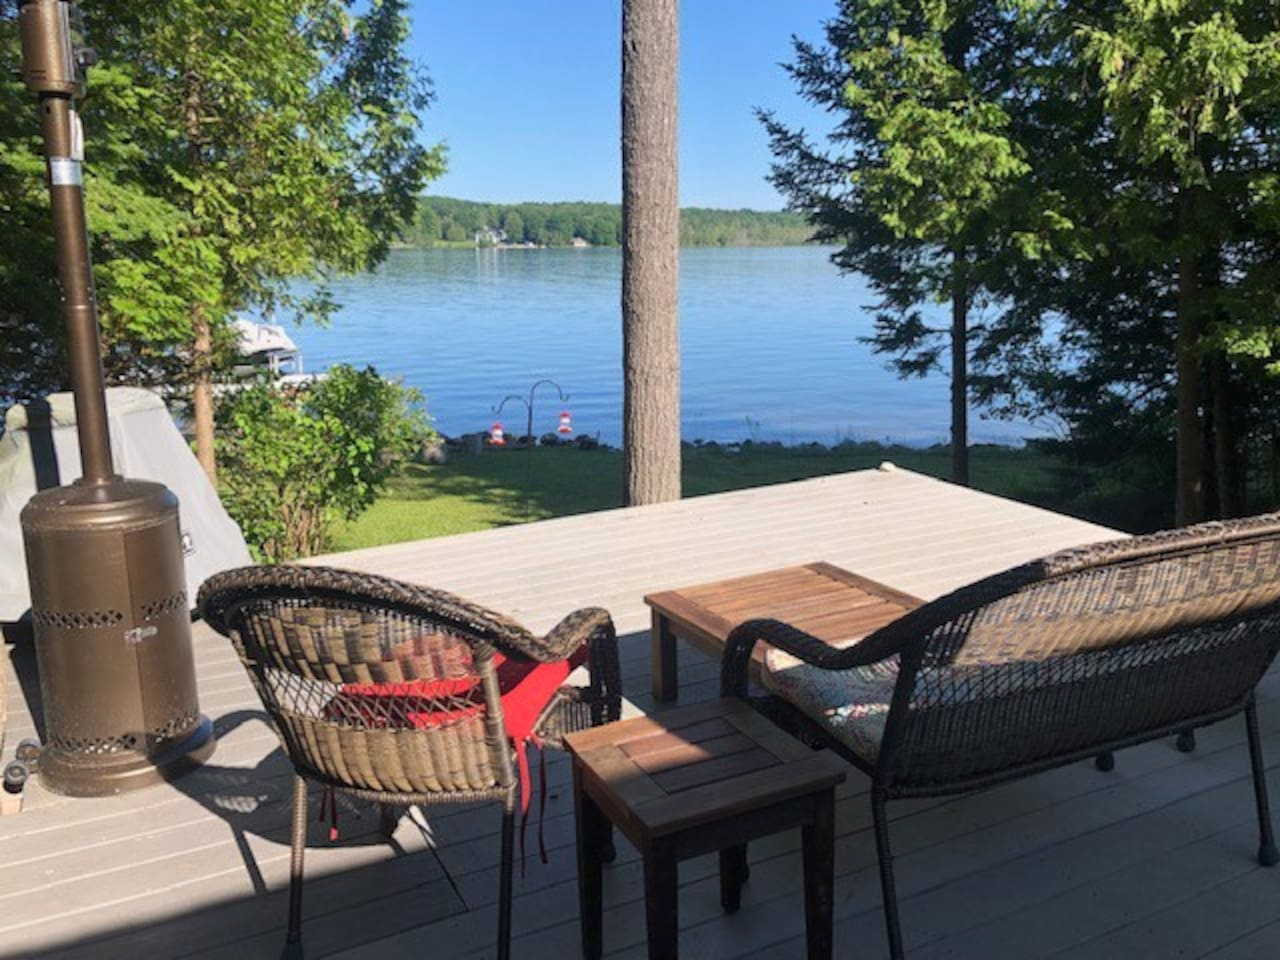 View from deck of lake cottage